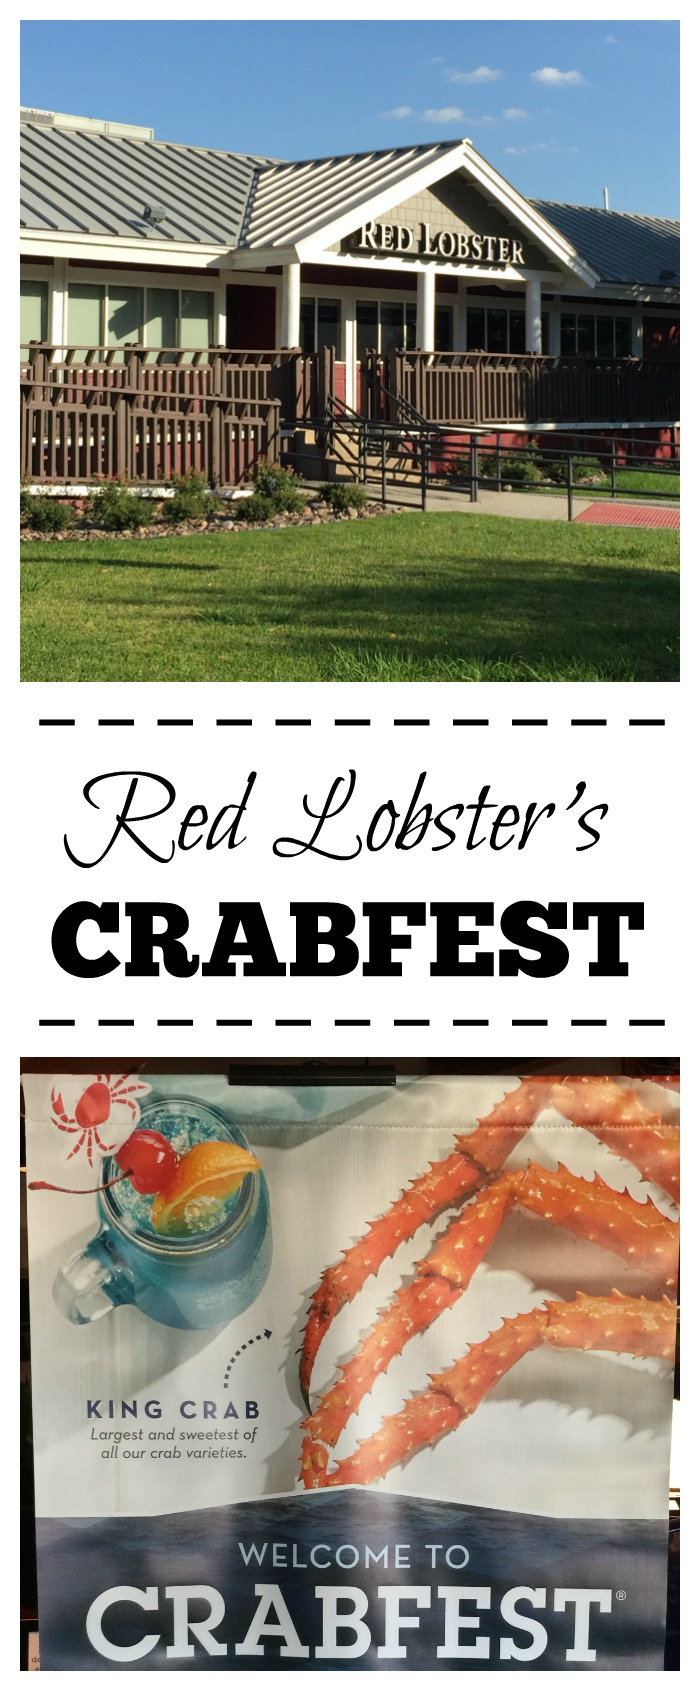 Red Lobster's Crabfest